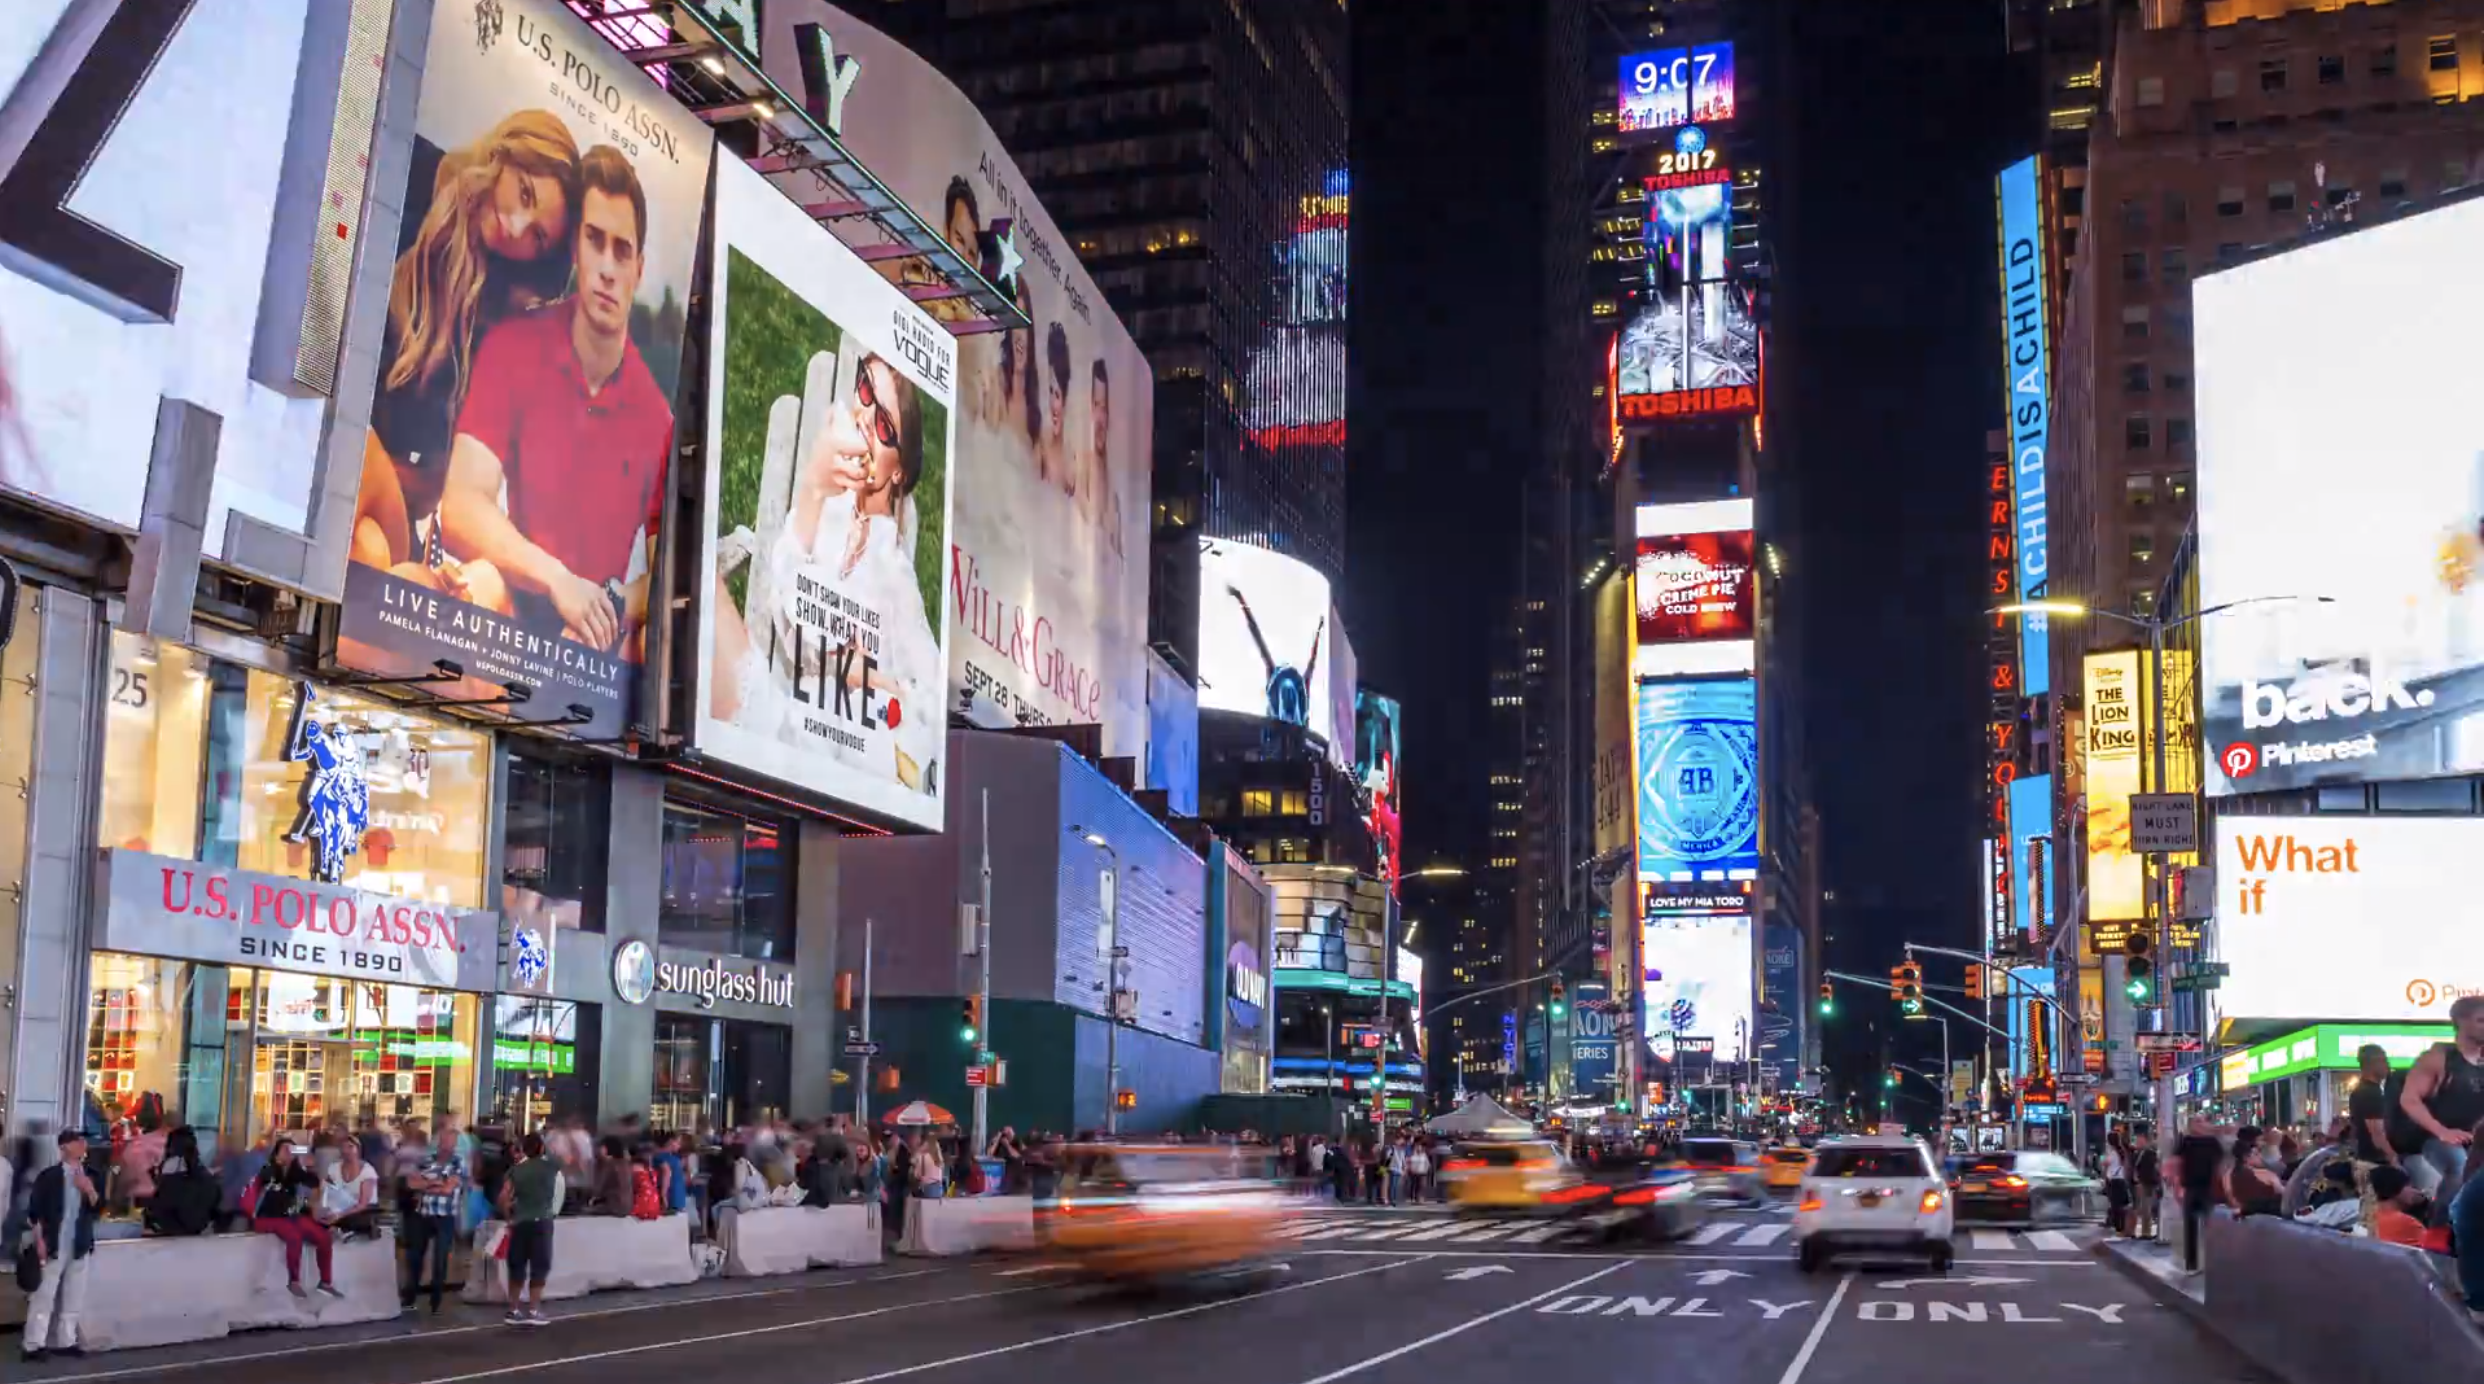 Hd Times Square New York City At Night Emeric S Timelapse